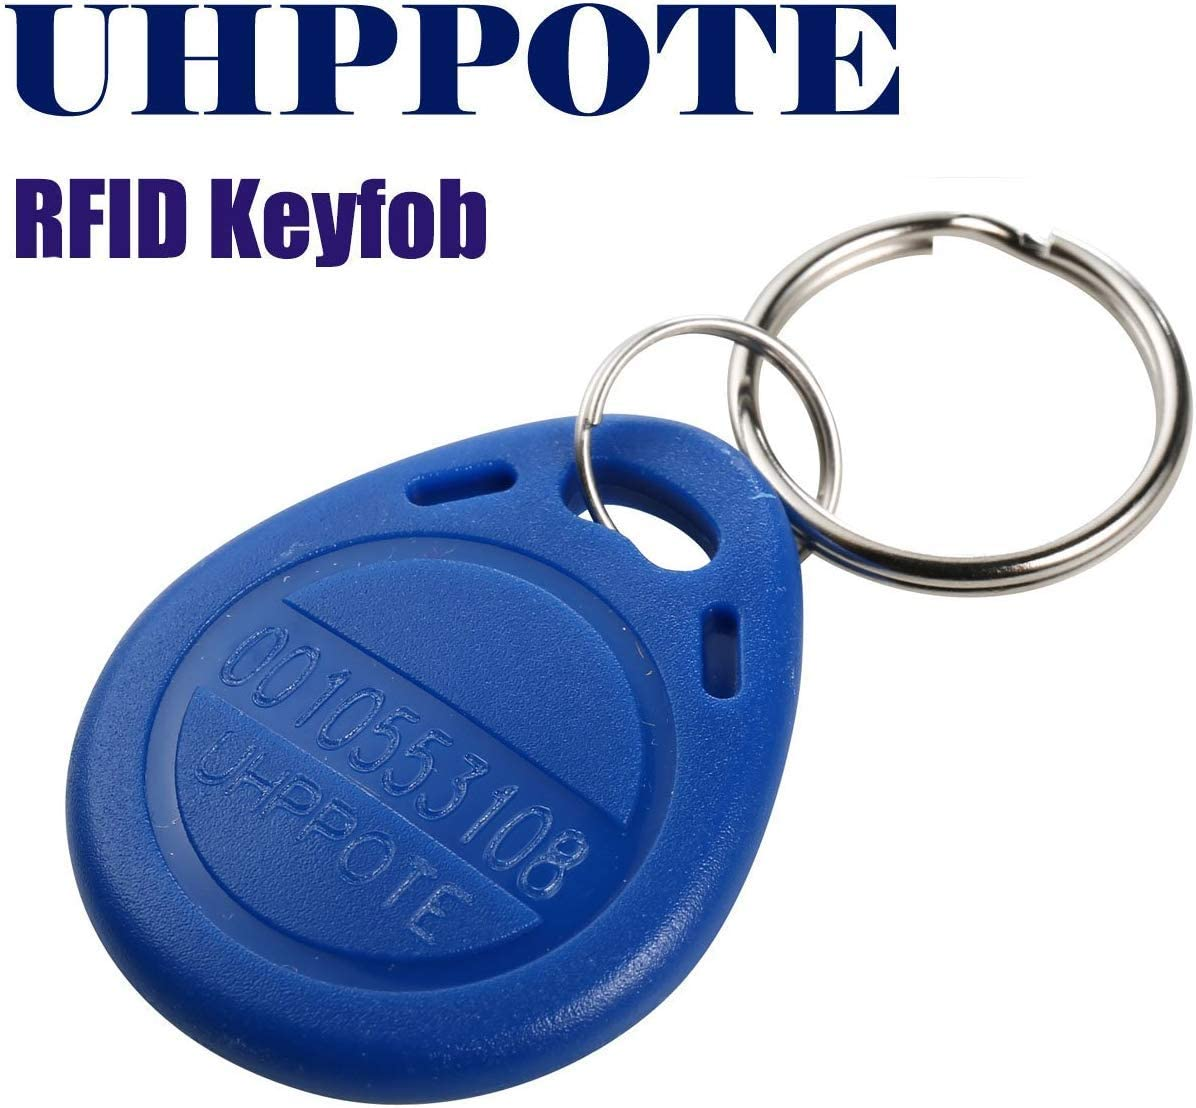 Proximity Em4100 125khz Rfid Em-id Card Tag Token Key Chain Keyfob Read Only Color Blue (pack Of 10) Home Improvement